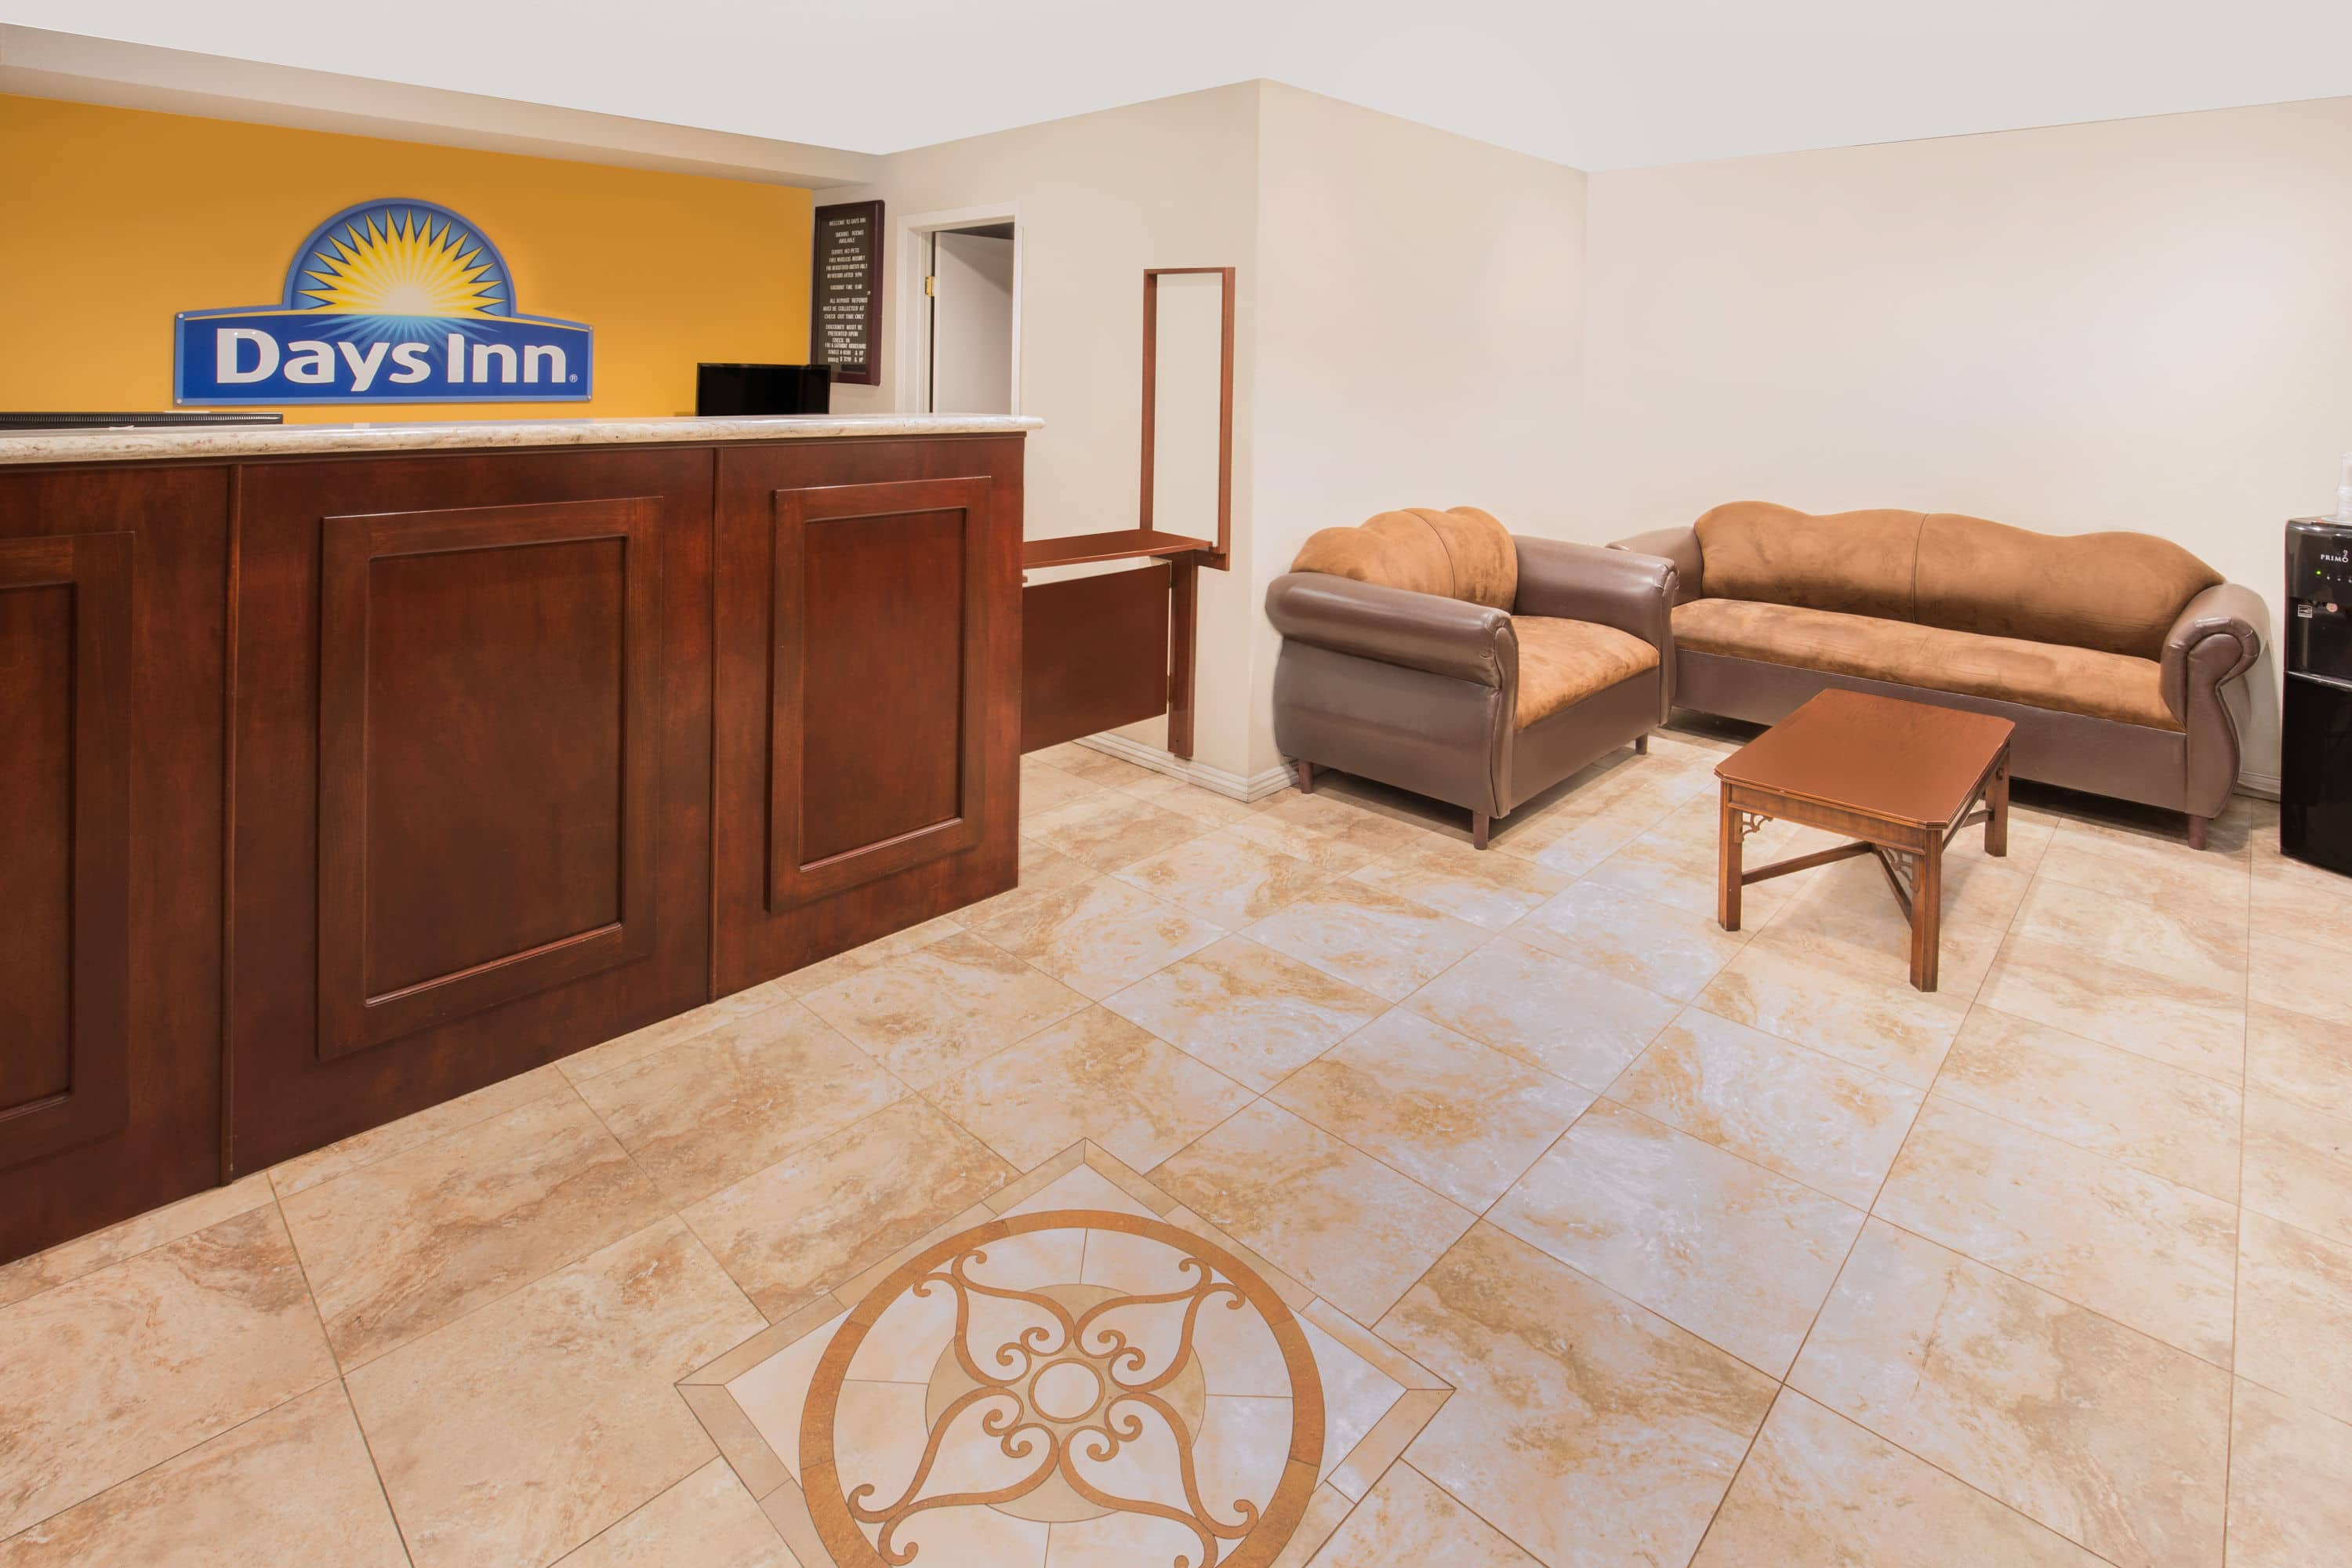 Days Inn Ontario Airport Hotel Lobby In California With Hotels Near Upland Ca